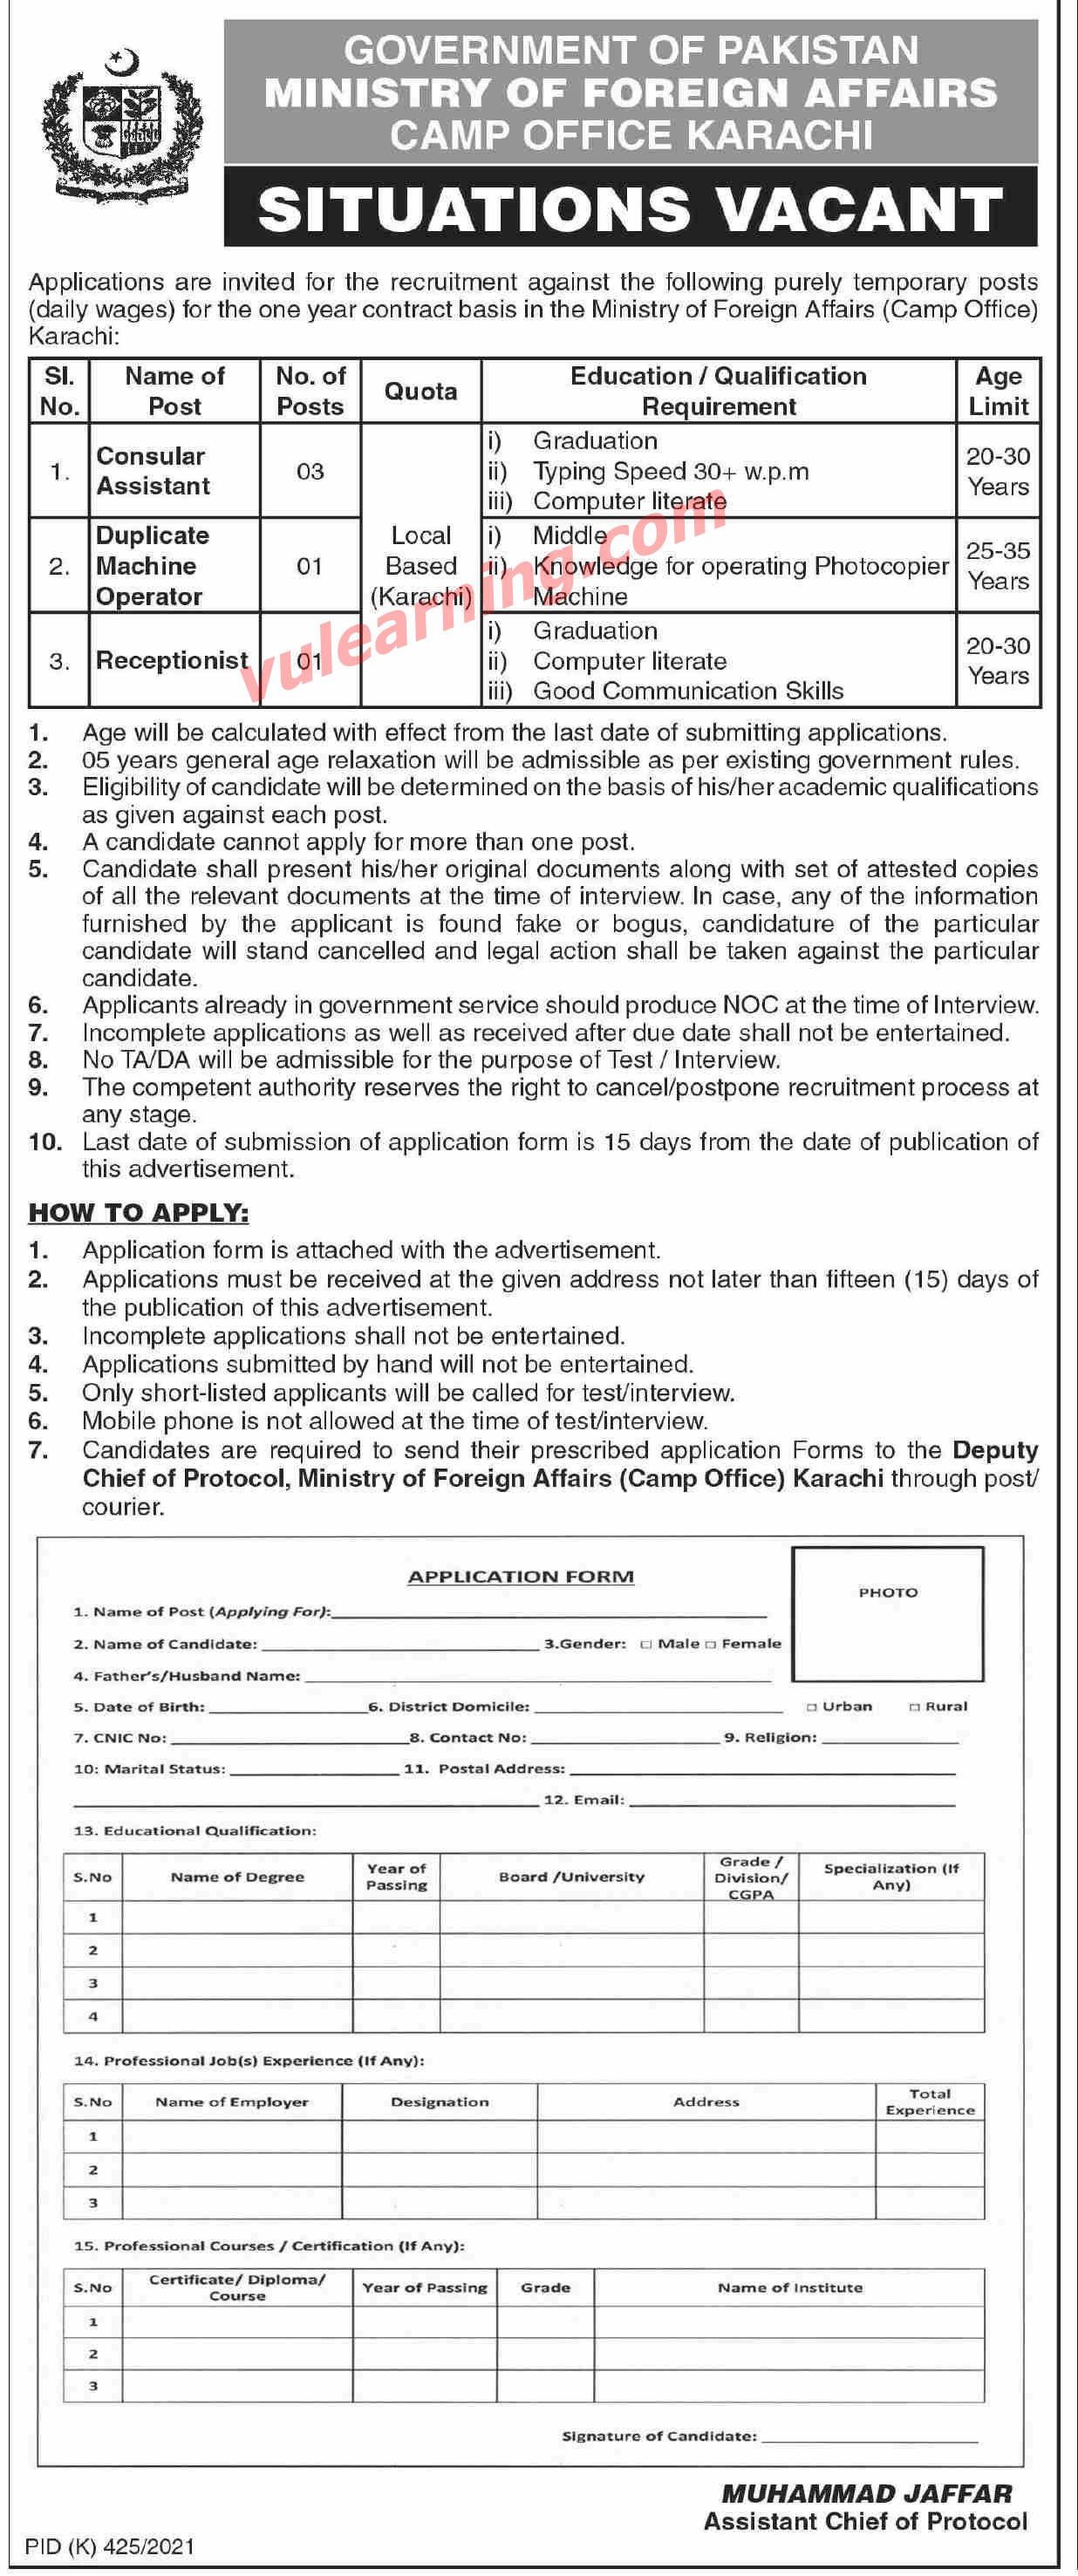 ministry of foreign affairs jobs 2021 for consular assistants receptionist duplicate machine operator at camp office karachi latest